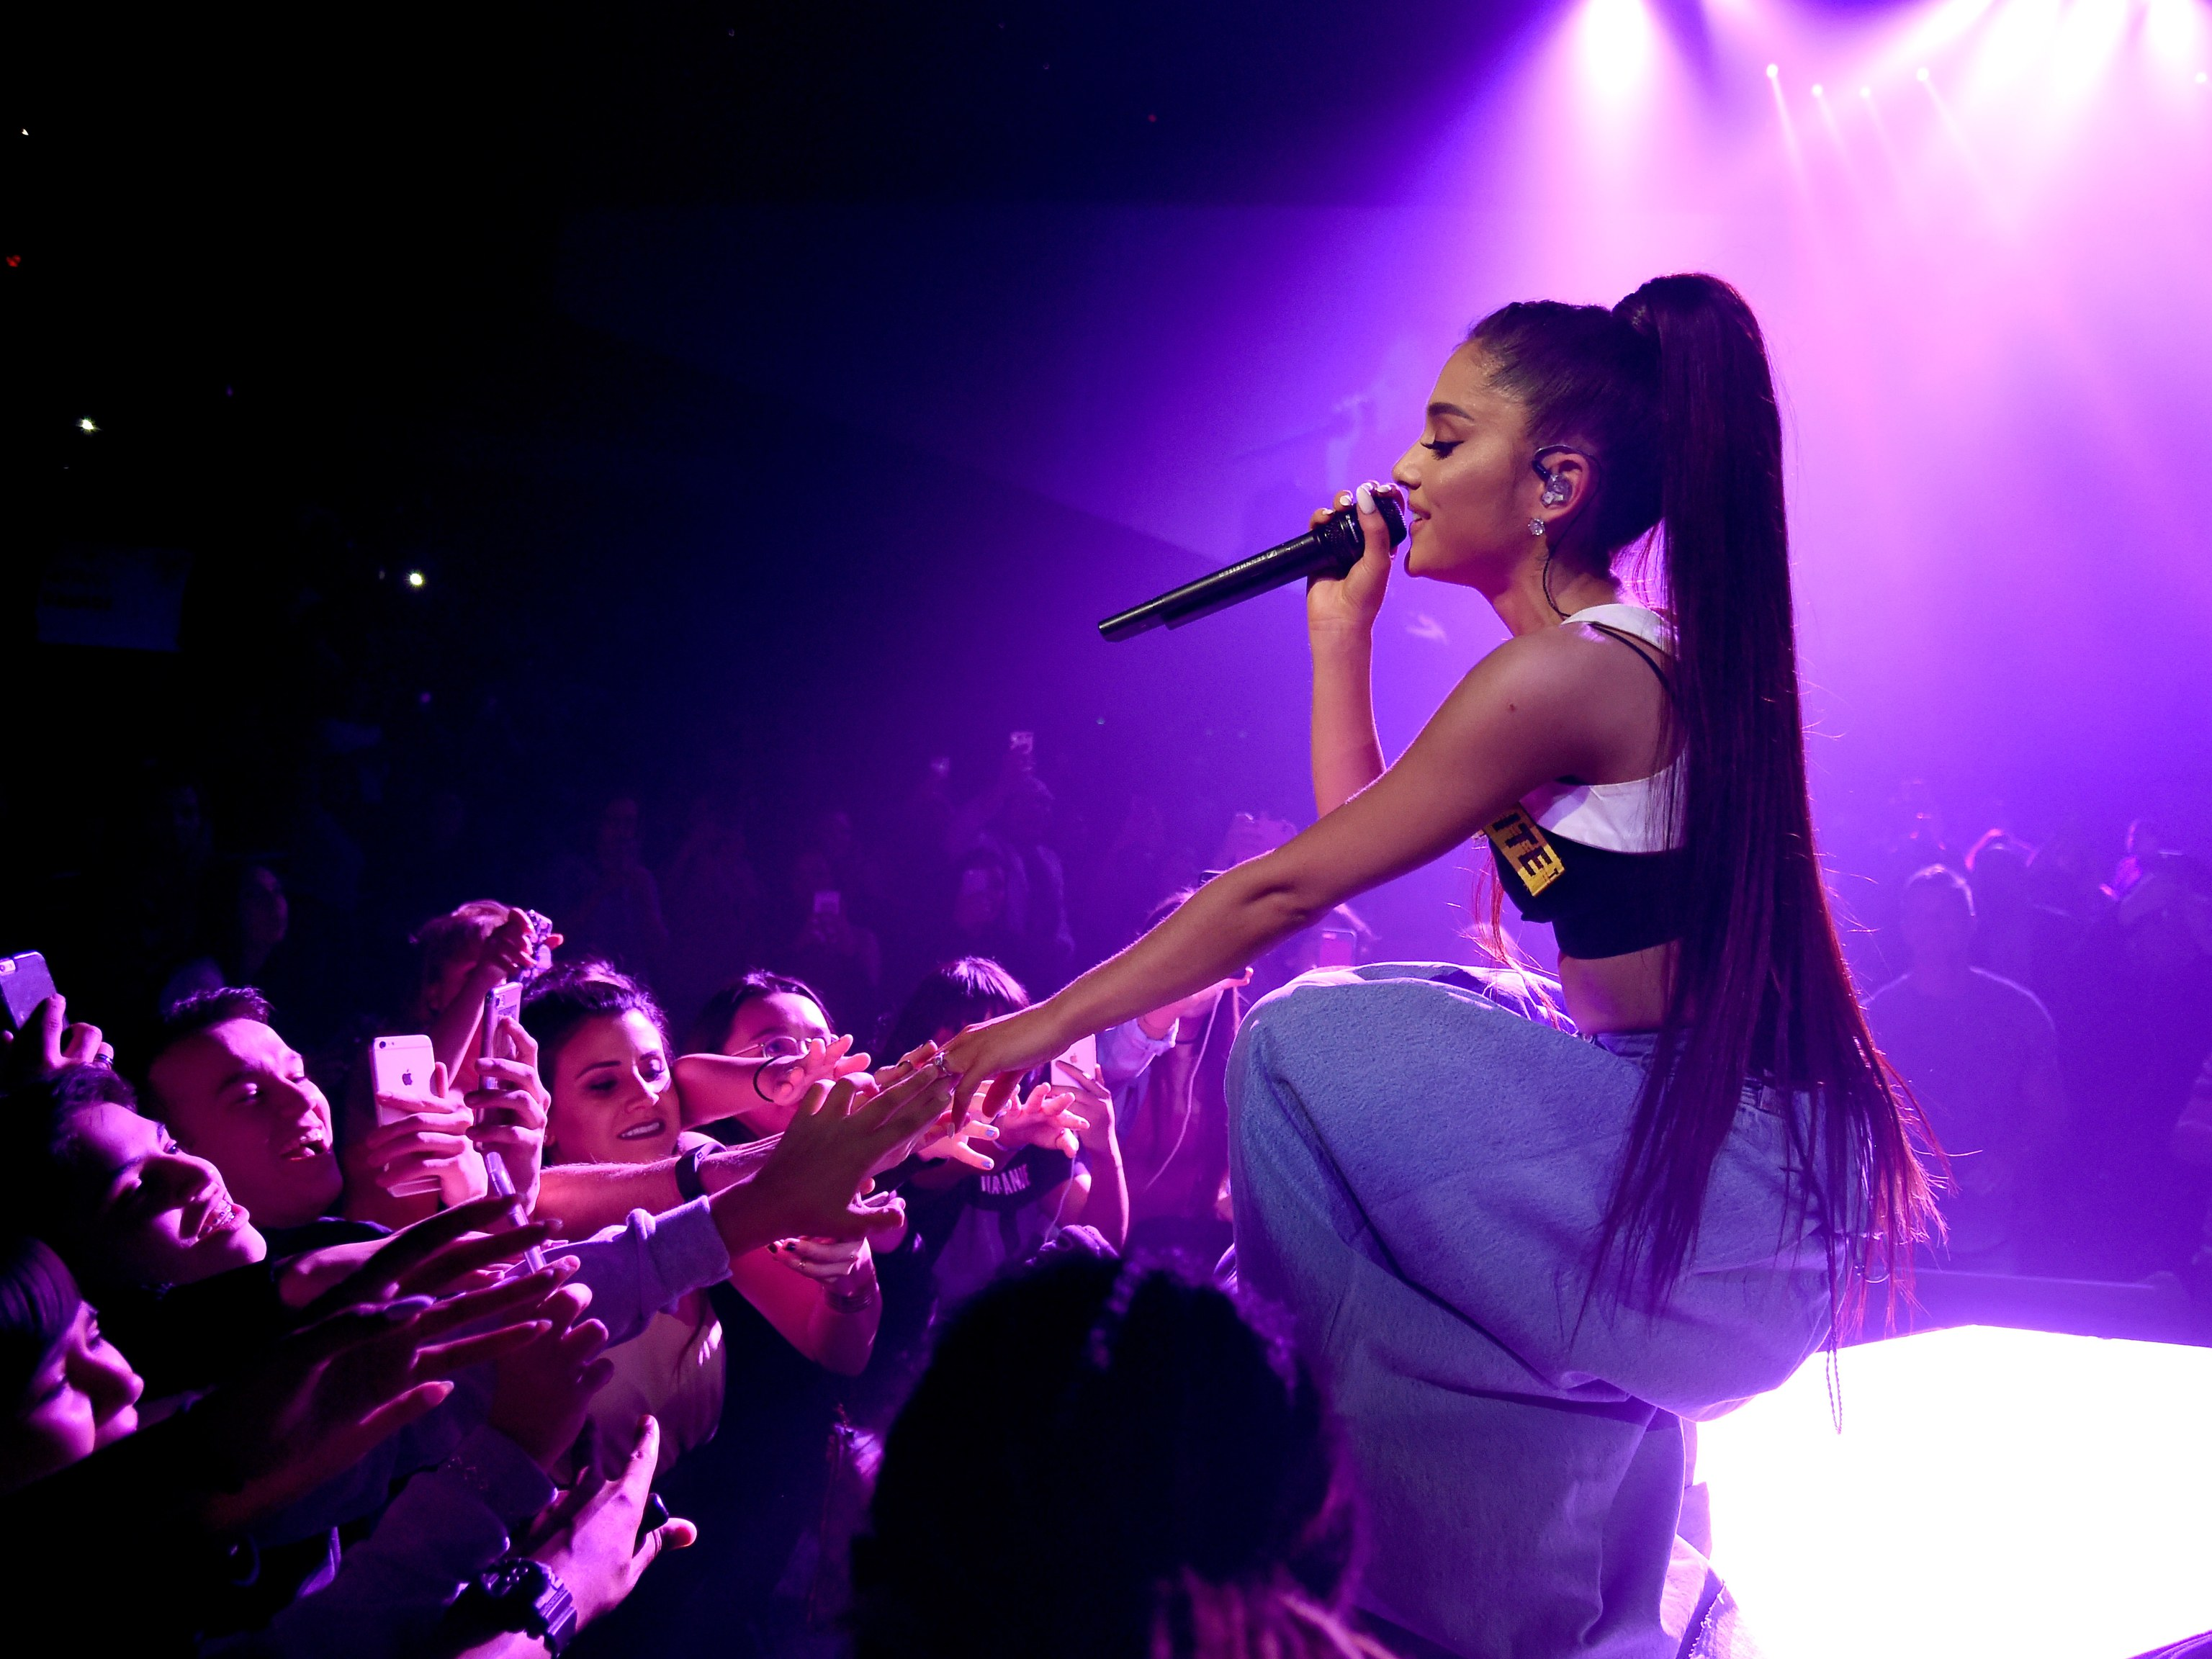 A terrorist attack at an Ariana Grande concert left 22 killed and 50 injured. (Photo: Archive)